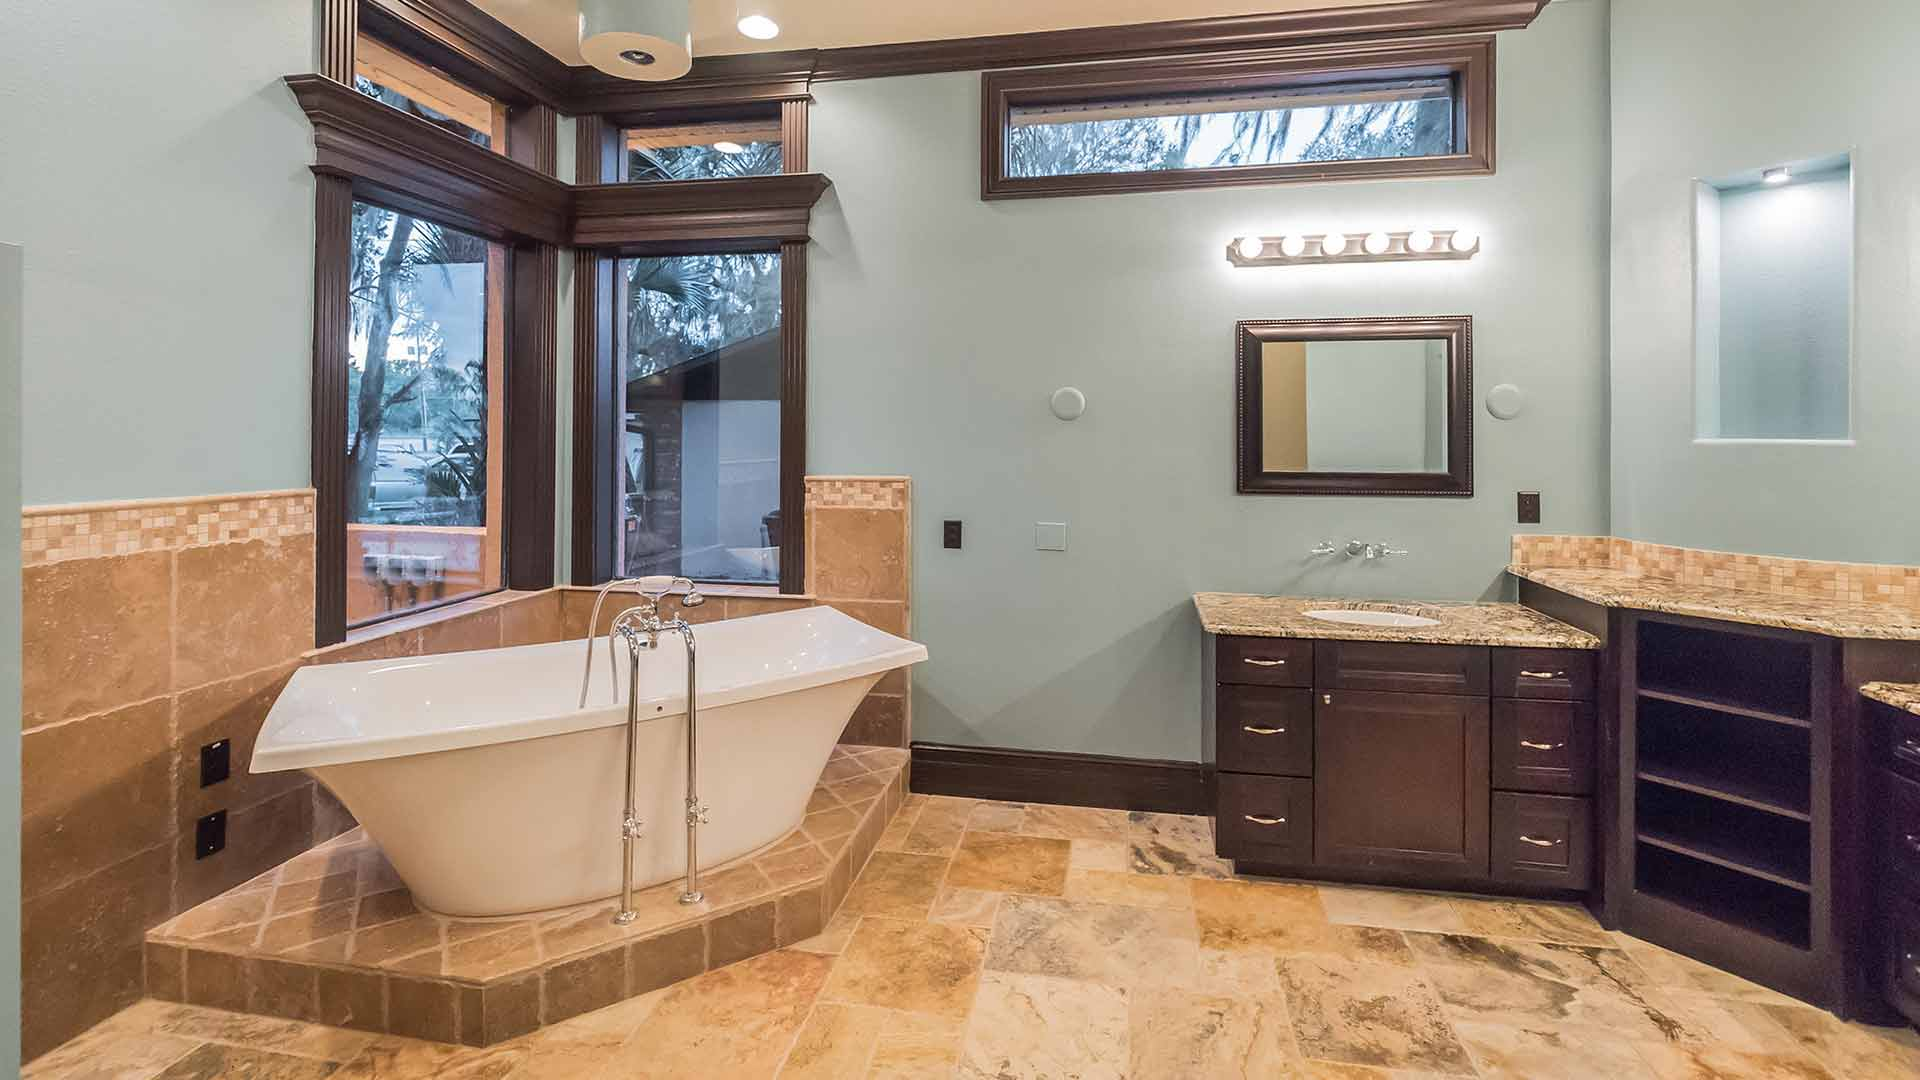 Bathroom Remodel: Walk-in Shower, Bathtub, or Both? | True ...